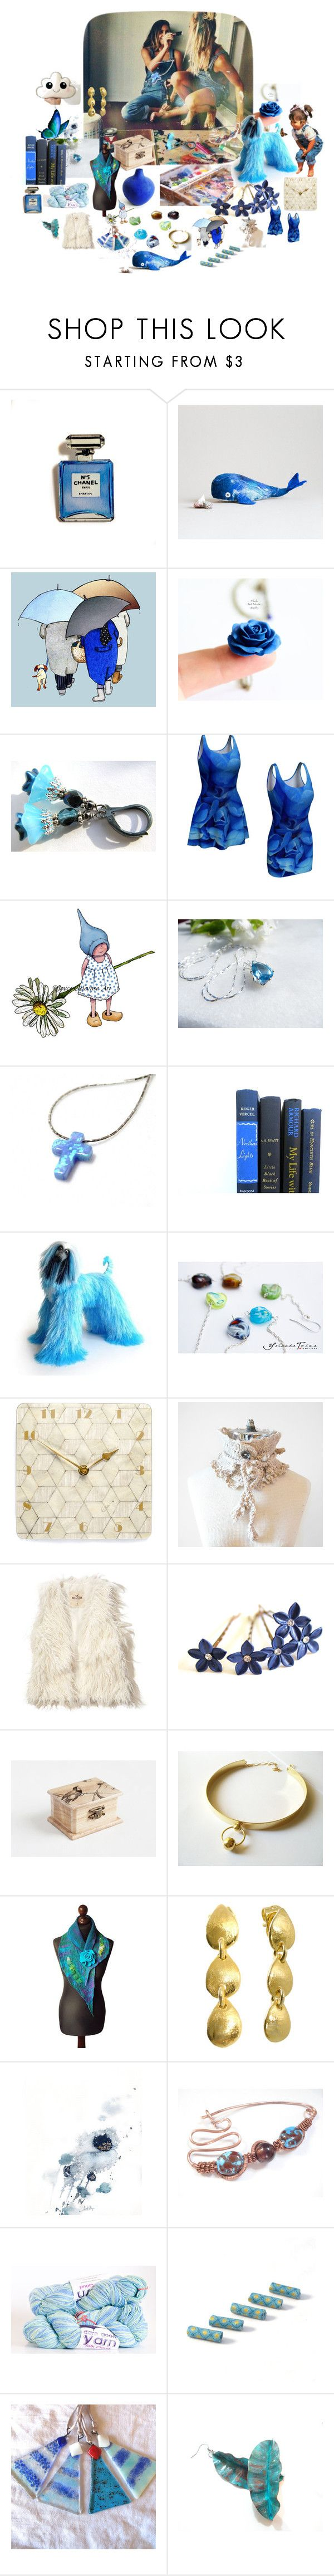 """Flea Market"" by treasury ❤ liked on Polyvore featuring Chanel and Hollister Co."